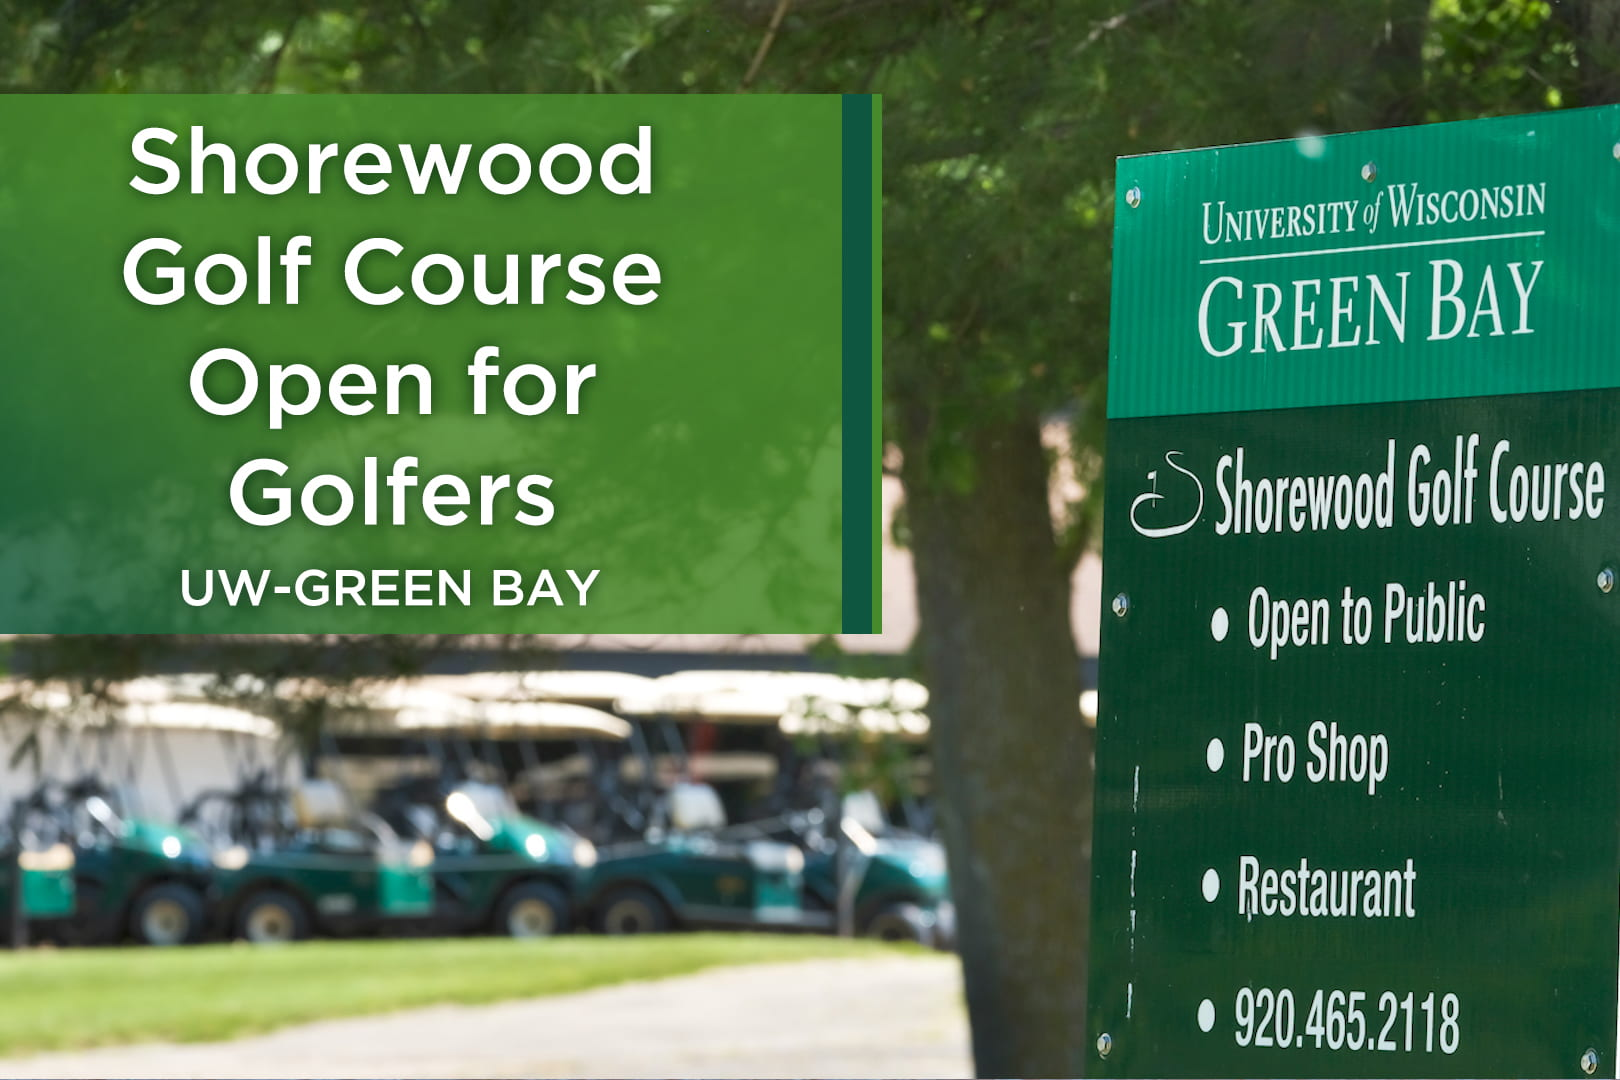 Photo of golf carts and the welcome sign at Shorewood Golf Course in Green Bay, WI.